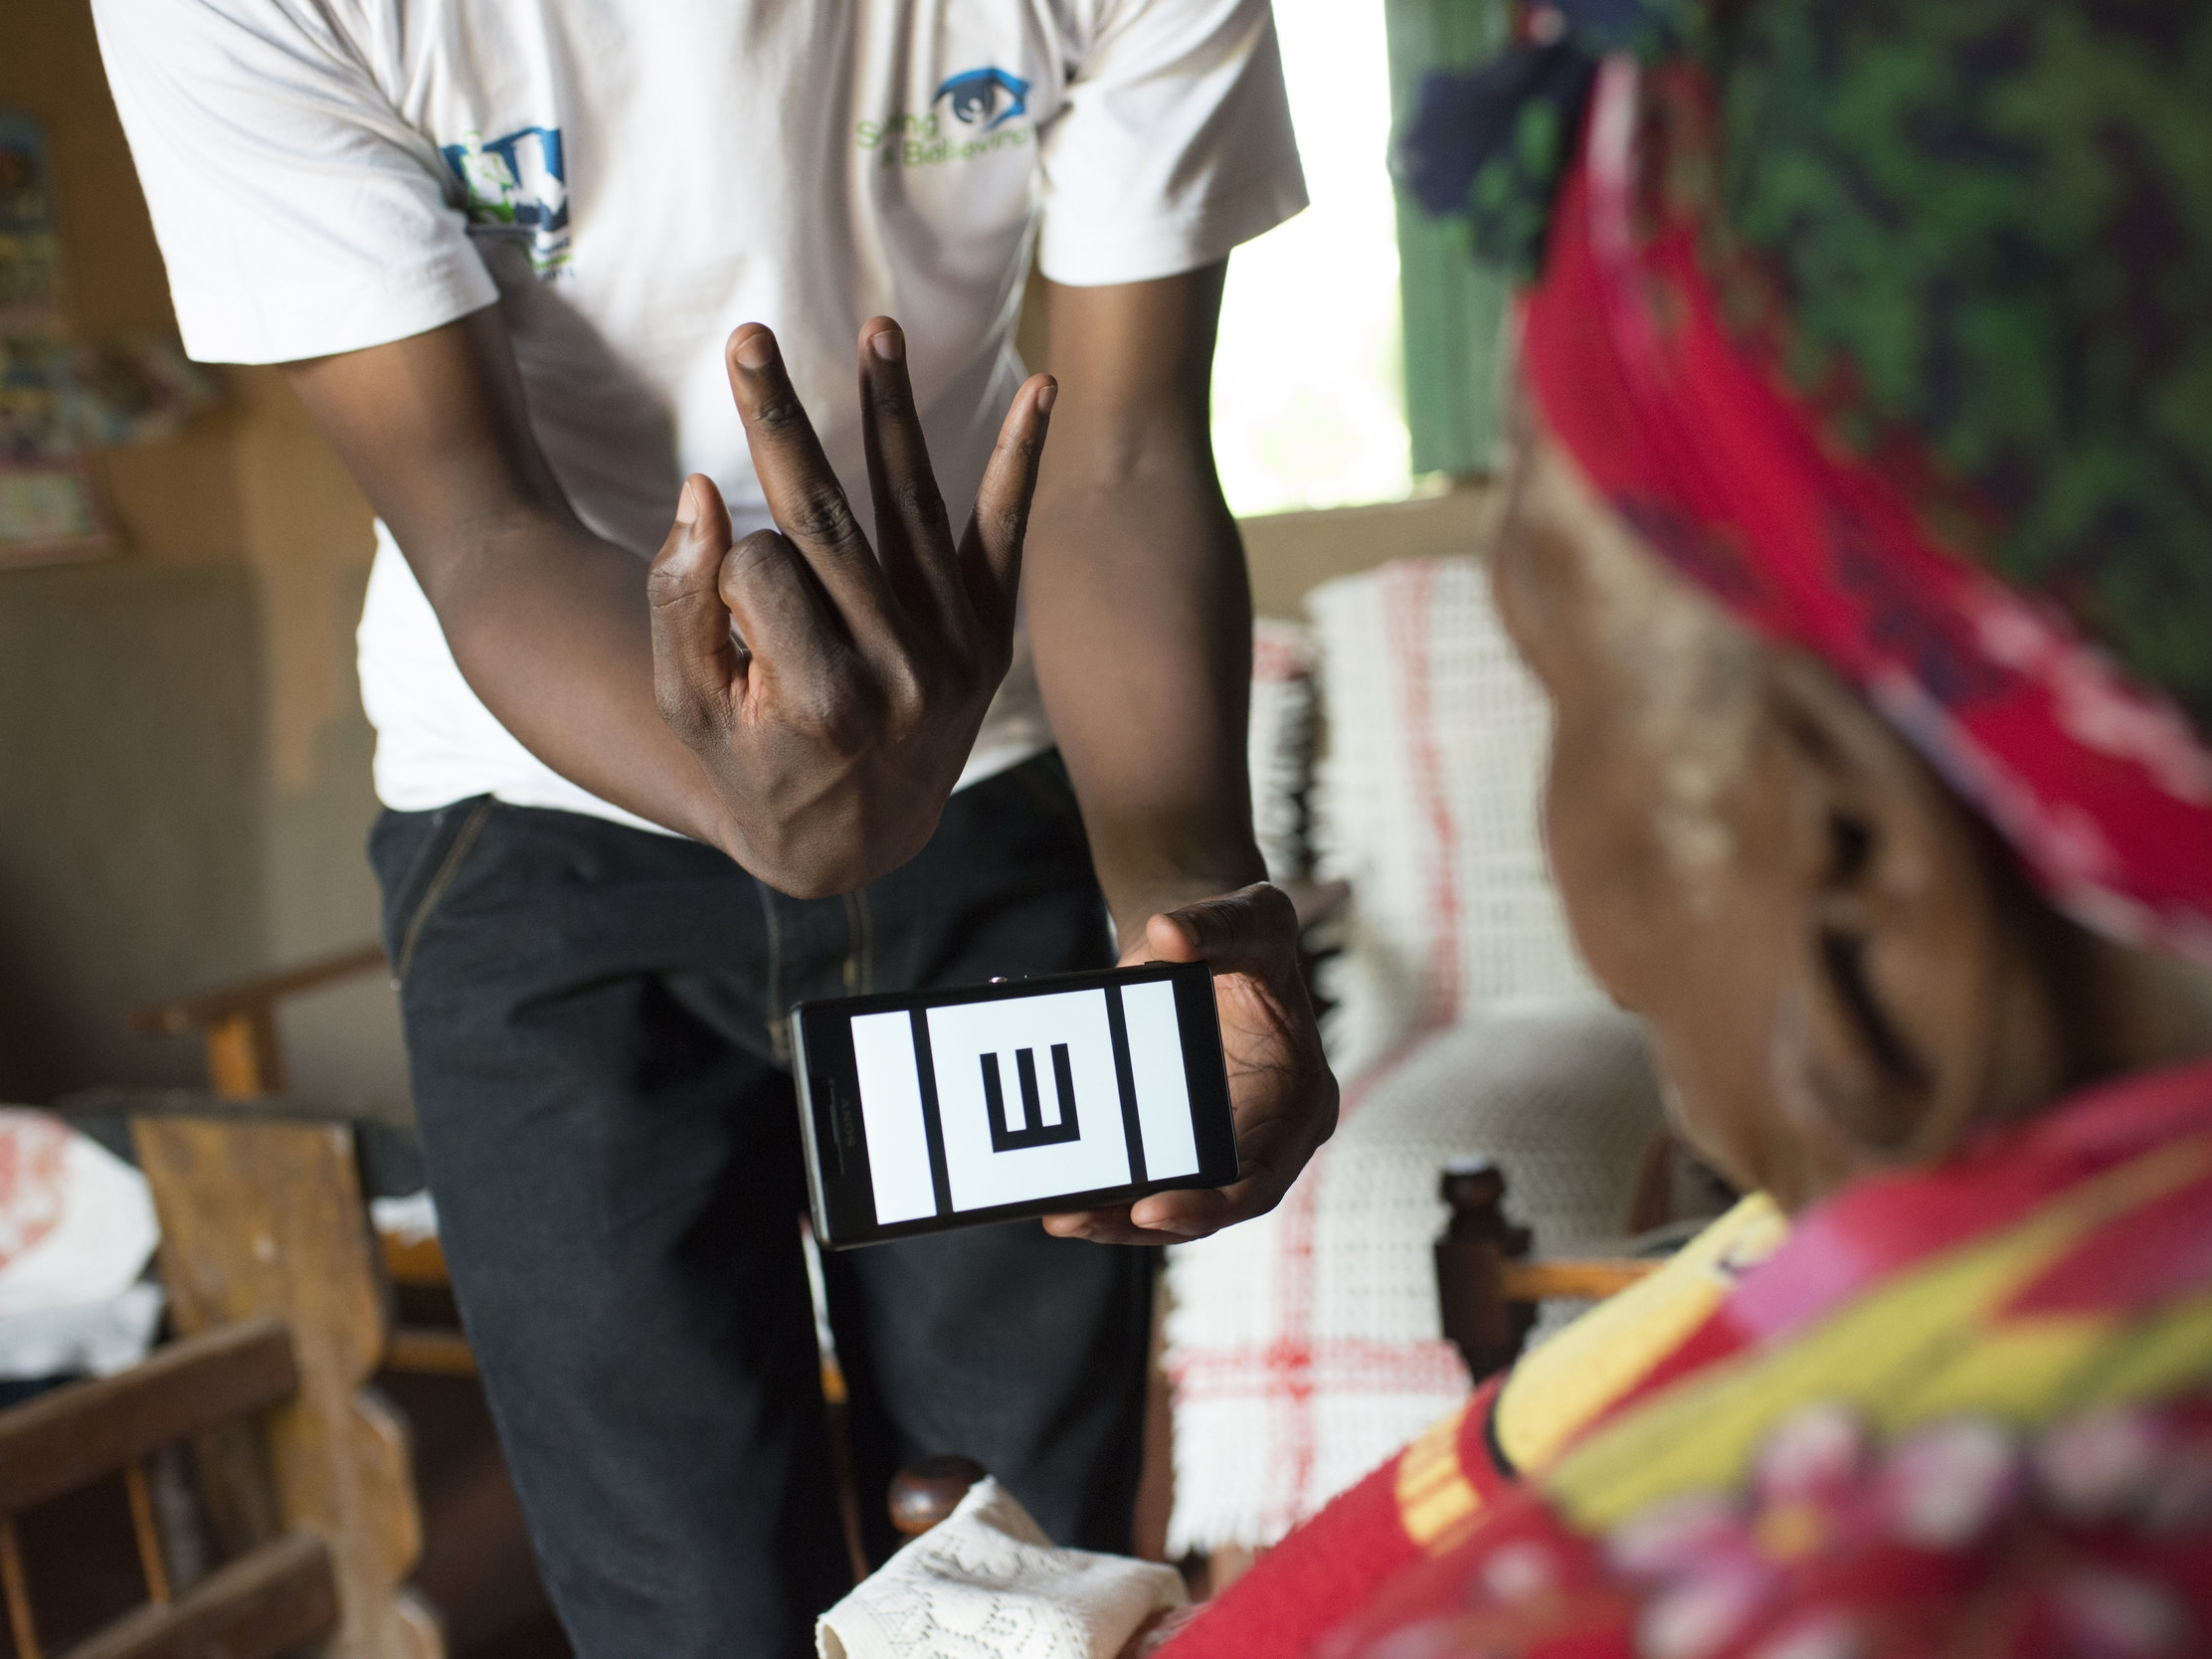 A health worker shows a lady how the Peek vision check app works in her home in Kenya